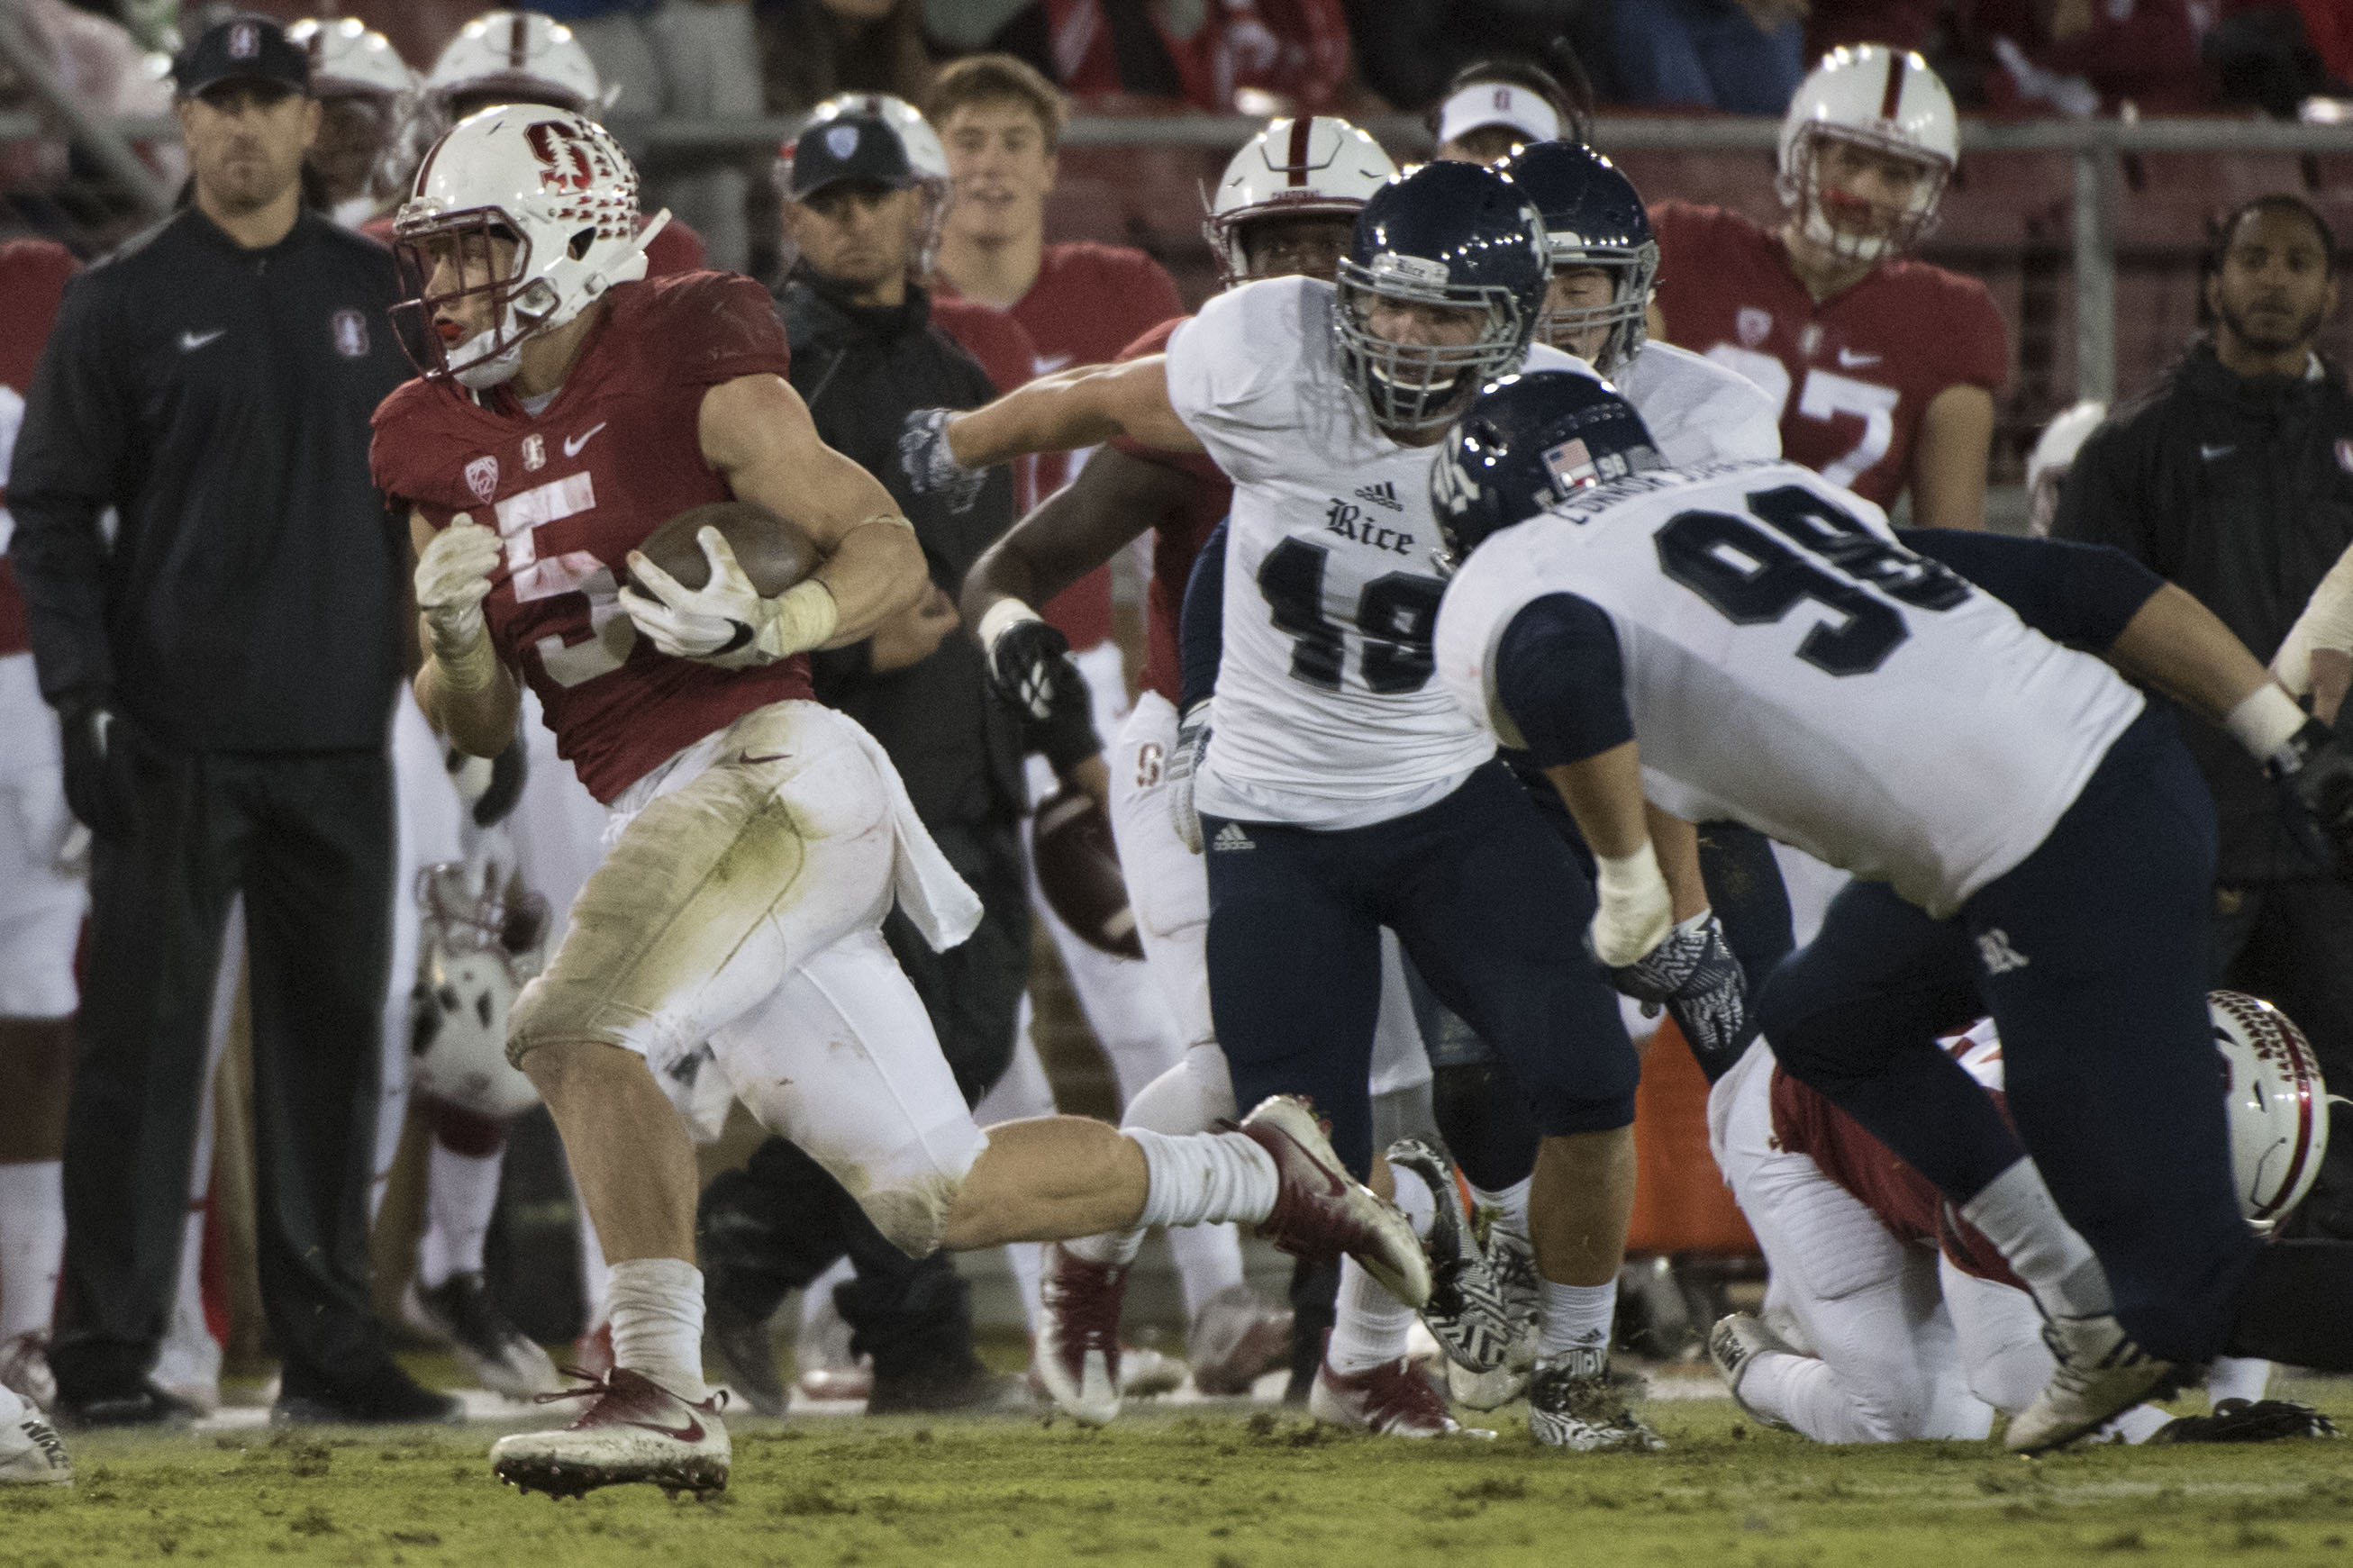 November 26, 2016; Stanford, CA, USA; Stanford Cardinal running back Christian McCaffrey (5) runs past Rice Owls linebacker DJ Green (49) during the first quarter at Stanford Stadium. Mandatory Credit: Kyle Terada-USA TODAY Sports